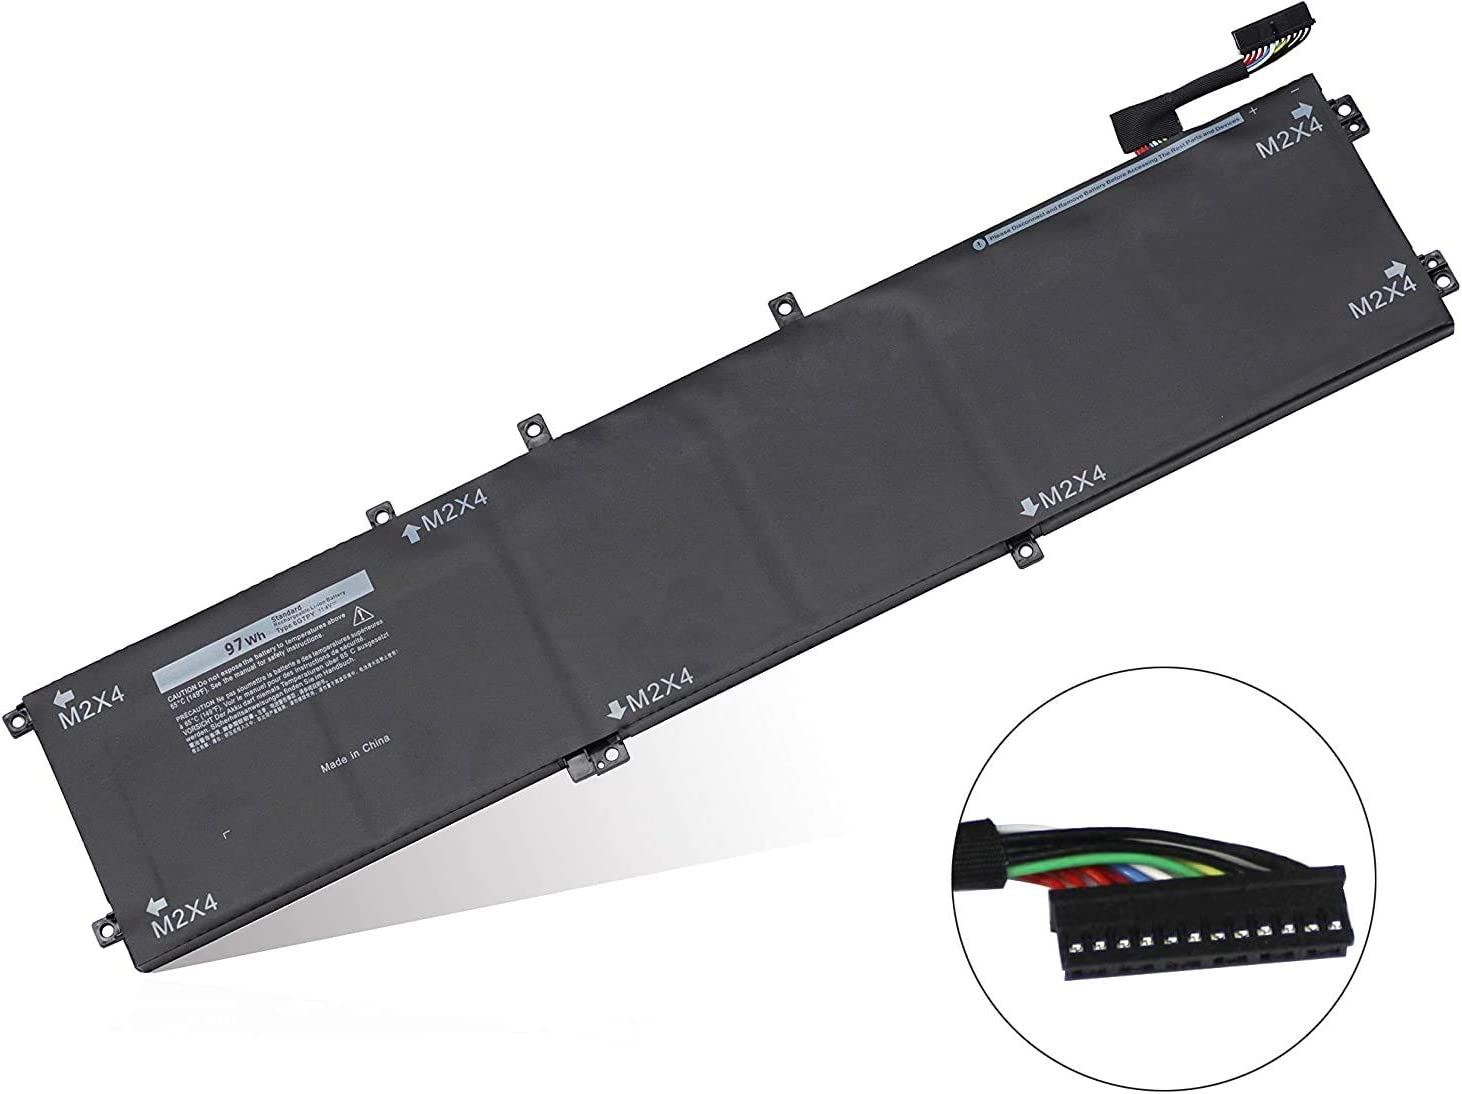 6GTPY Laptop Battery (11.4V 97Wh) for Dell XPS 15 9570 9560 9550 7590 Precision 5530 5520 5510 M5510 M5520 Series 5XJ28 5D91C GPM03